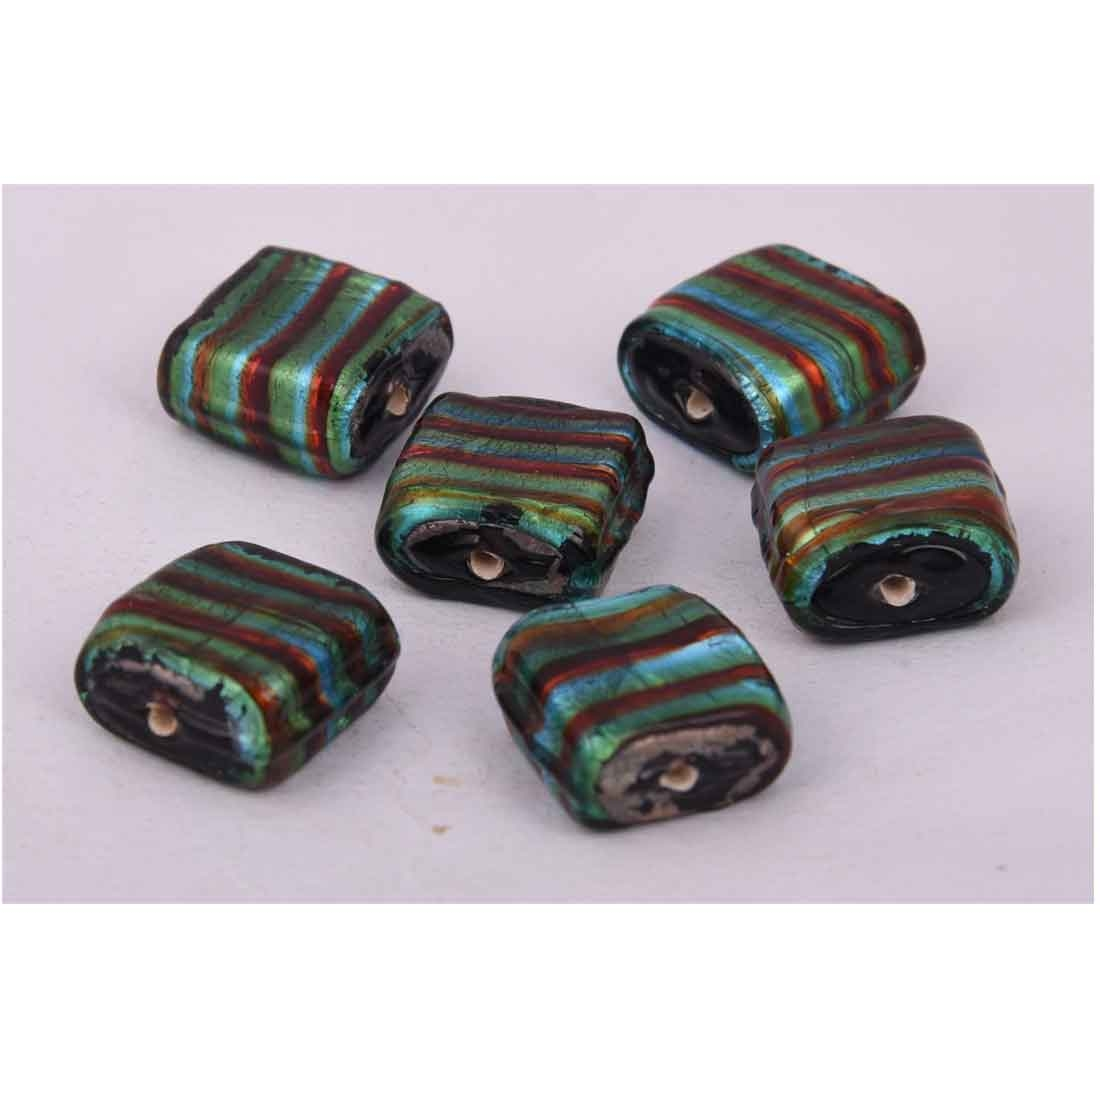 Beads India 1700070 Lampwork Handcrafted Glass Beads/Discounts Above 500 pcs